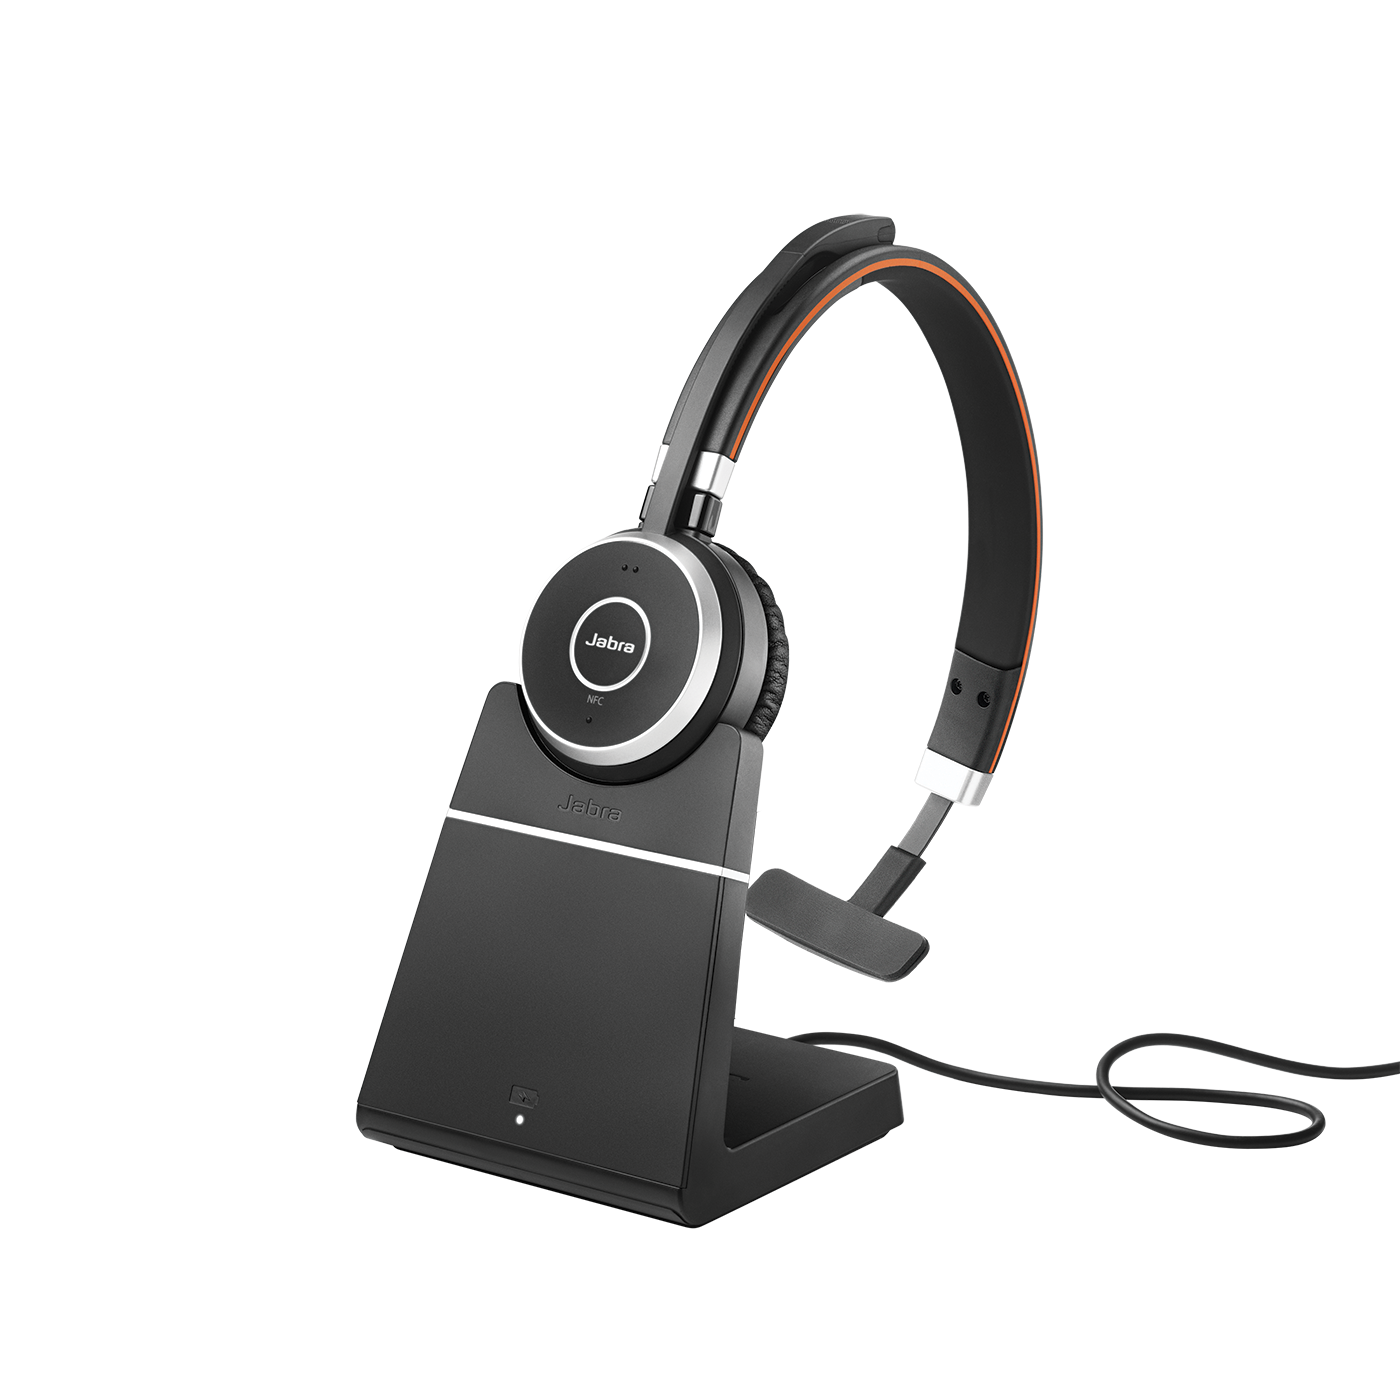 Jabra_Evolve_65_Mono_product_instand.png